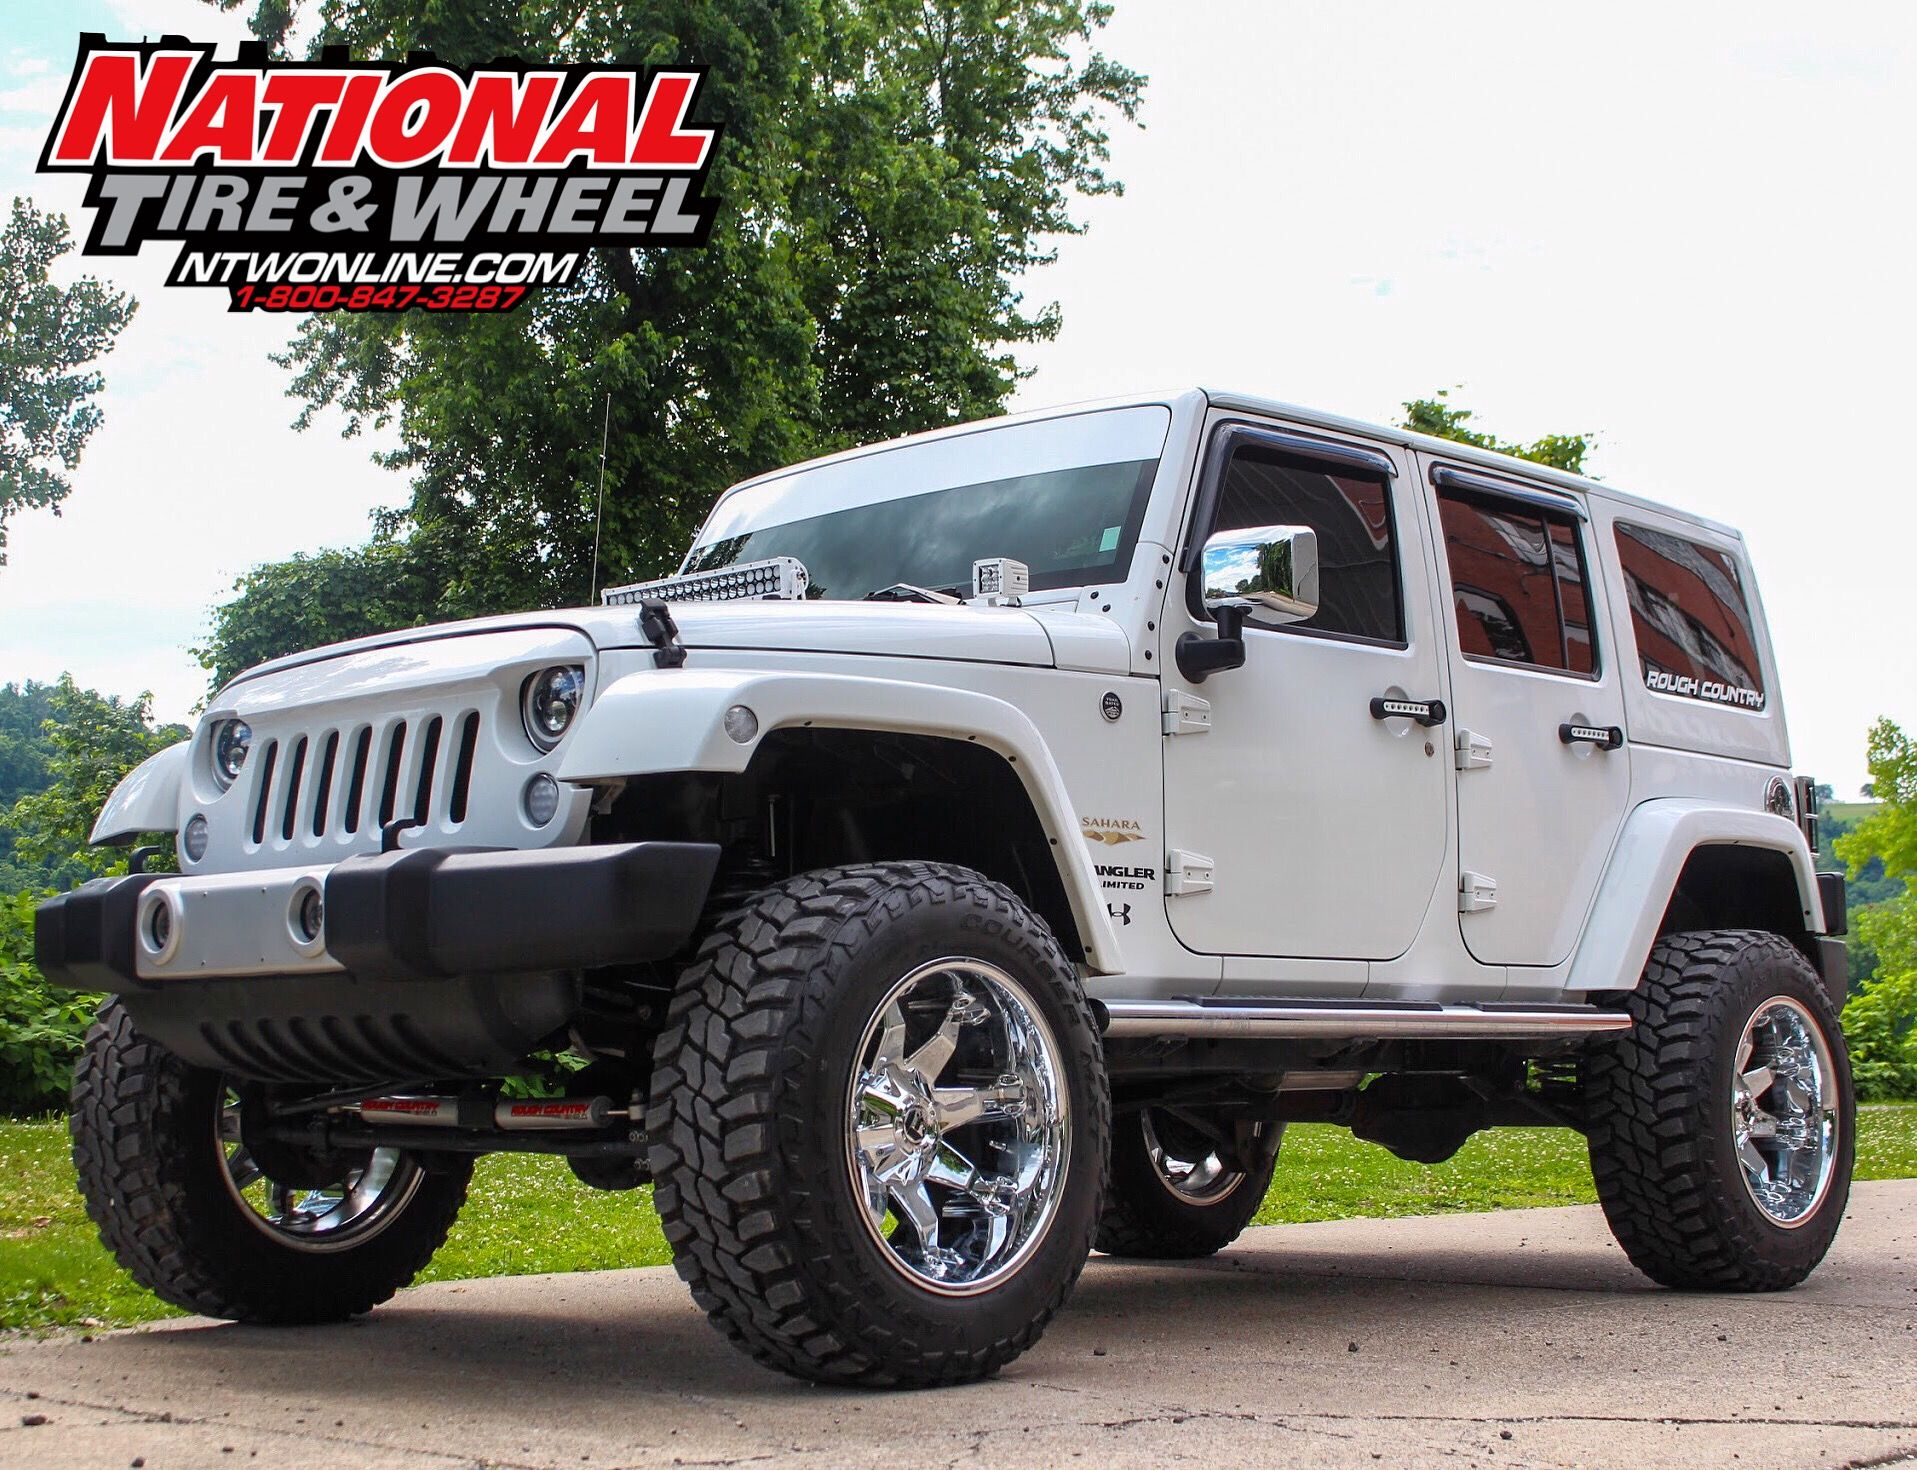 Ntw Install This Jeep Jk Received A Set Of 20x12 Fuel Off Road